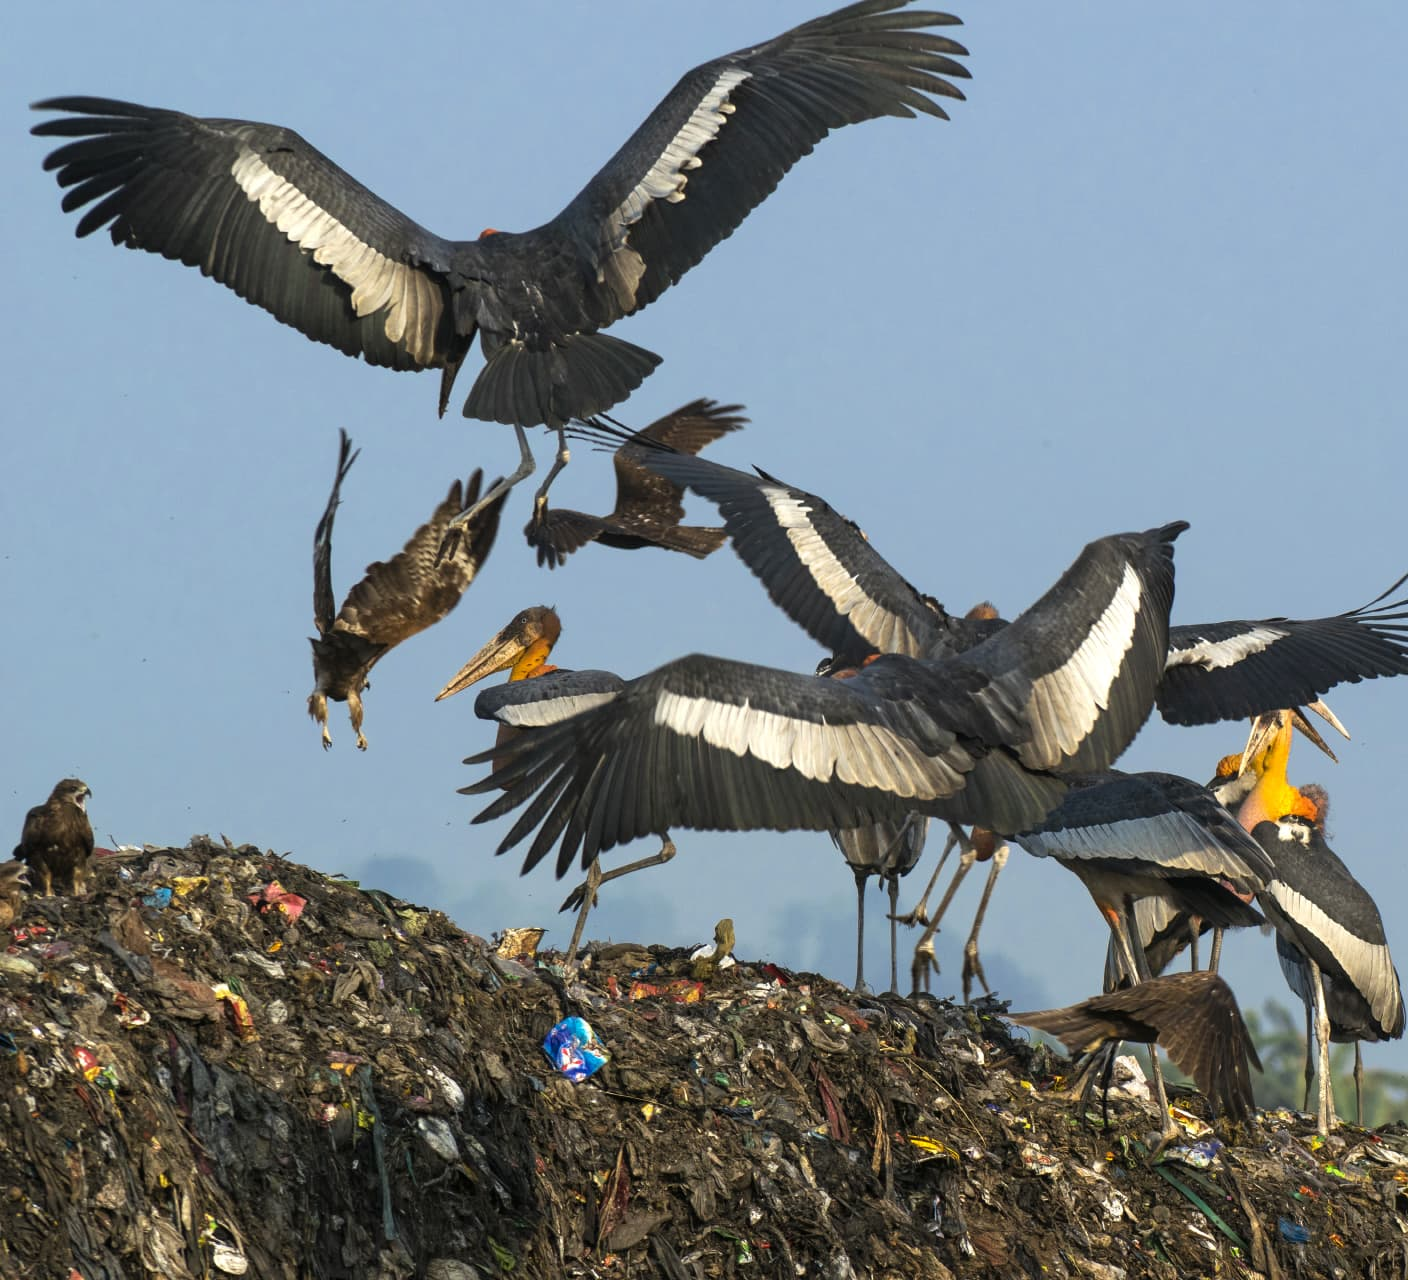 The Dramatic Tale of the Greater Adjutant